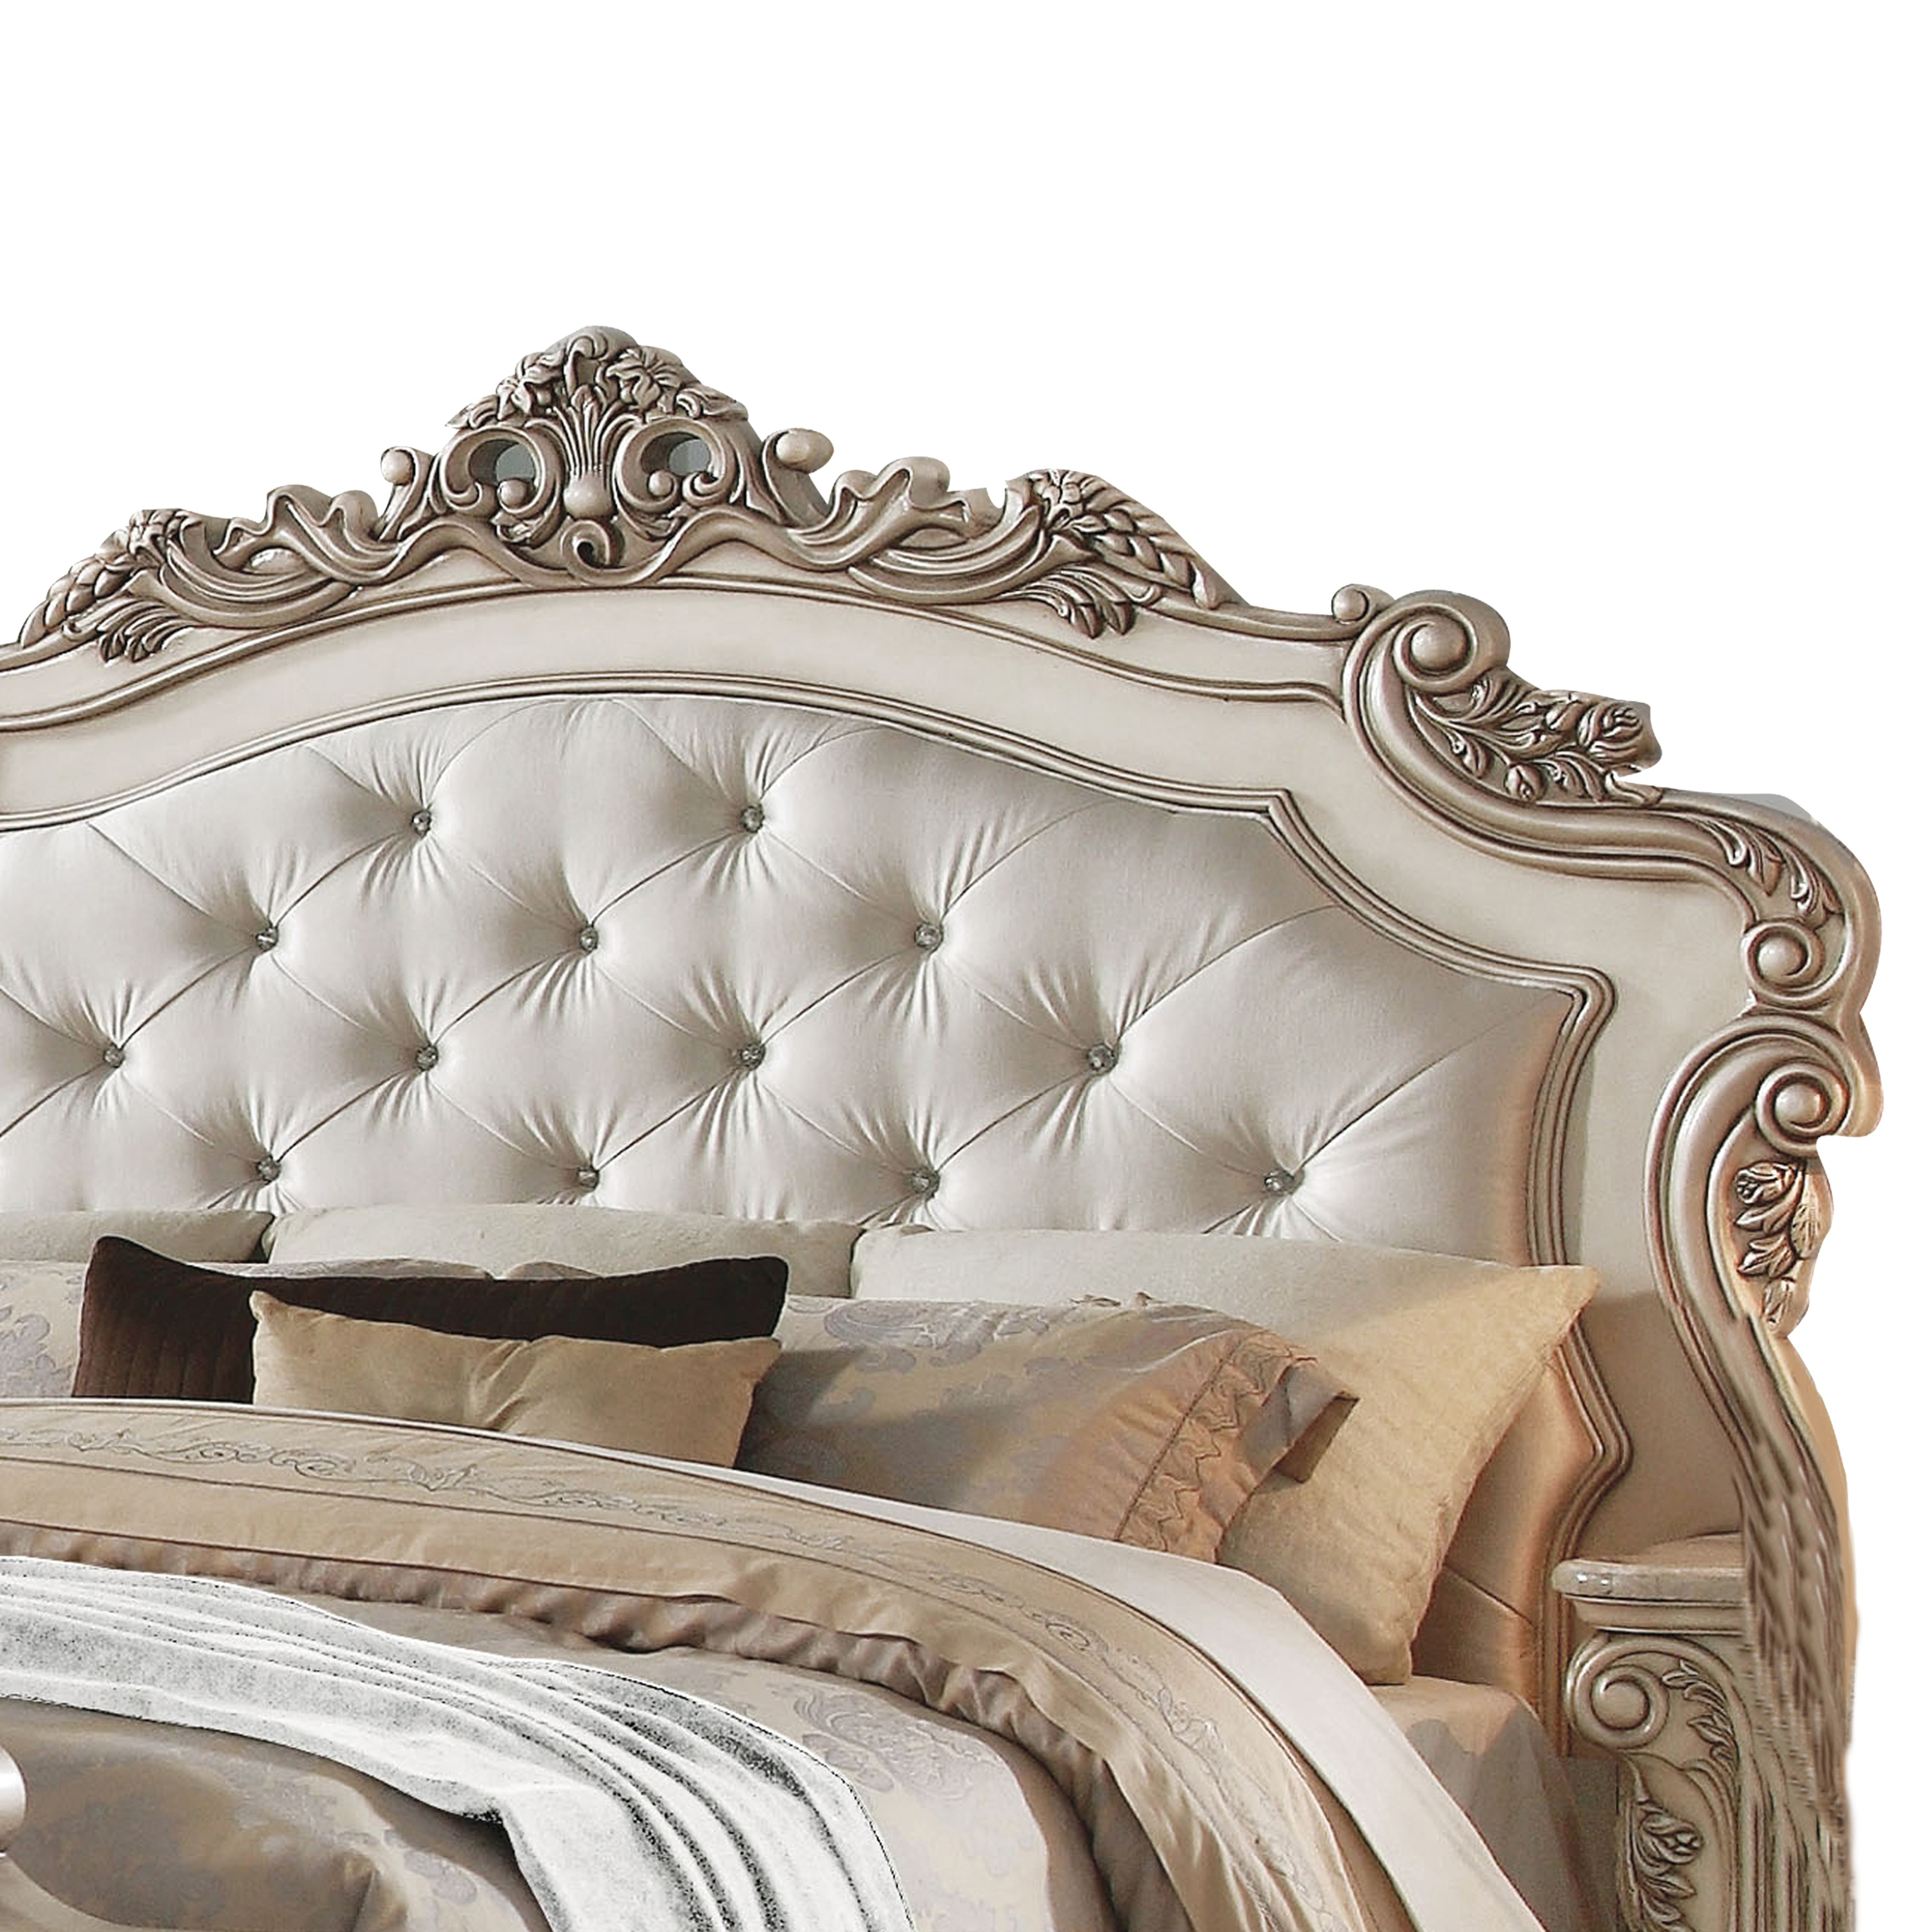 Shop Black Friday Deals On Tufted Queen Size Bed With Crown Shape Headboard And Footboard Beige Overstock 31255692